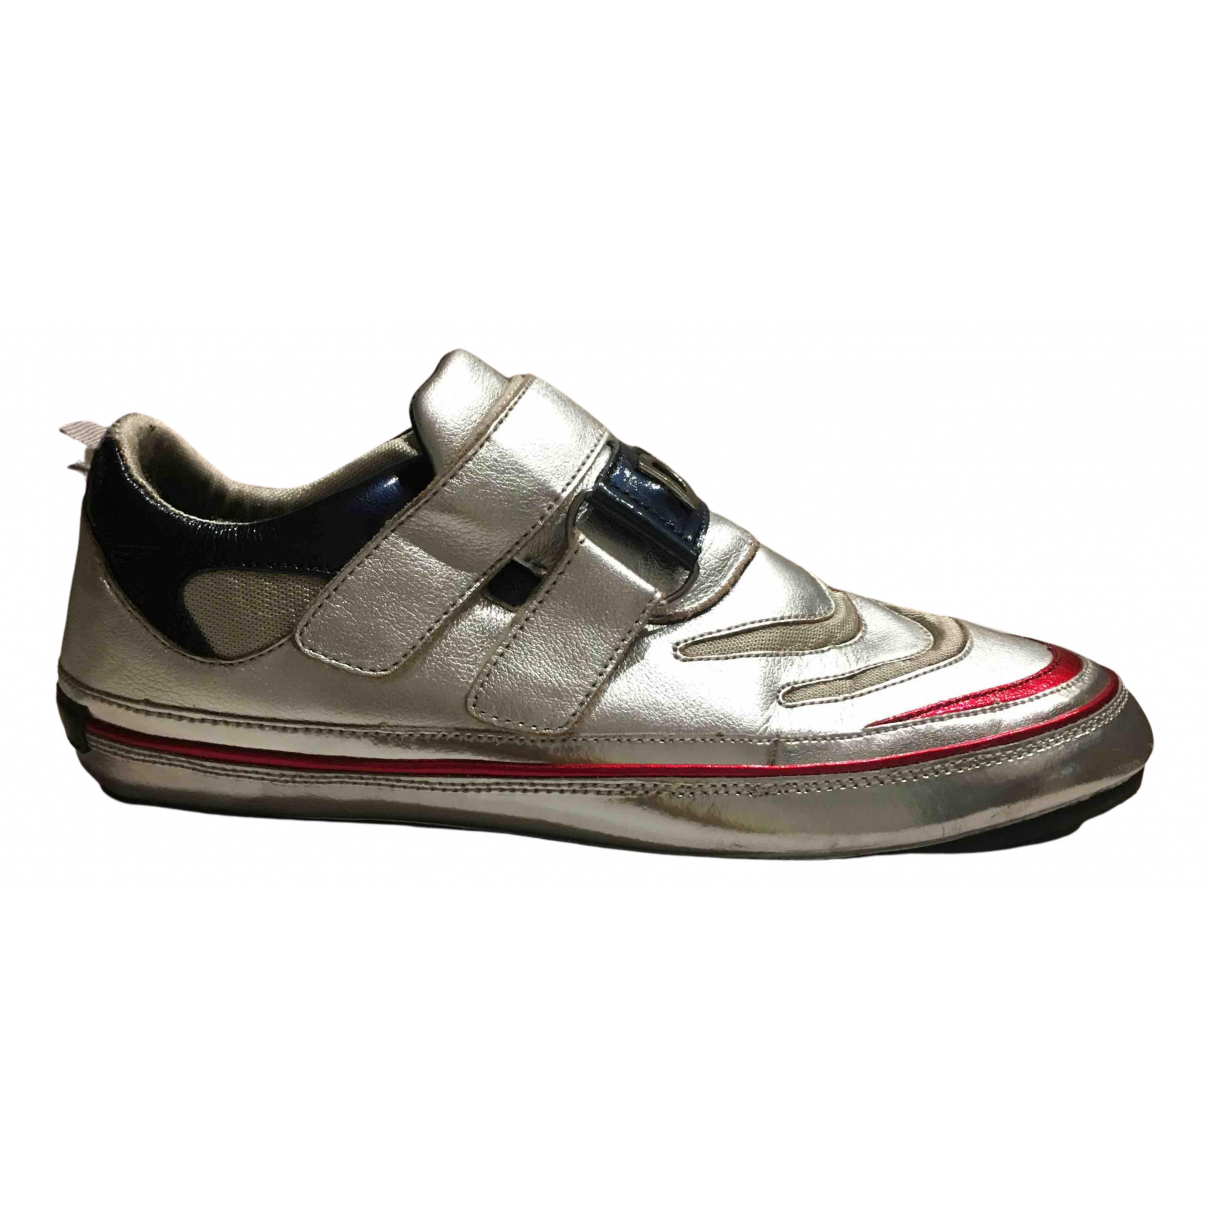 D&g N Silver Leather Trainers for Men 8.5 US